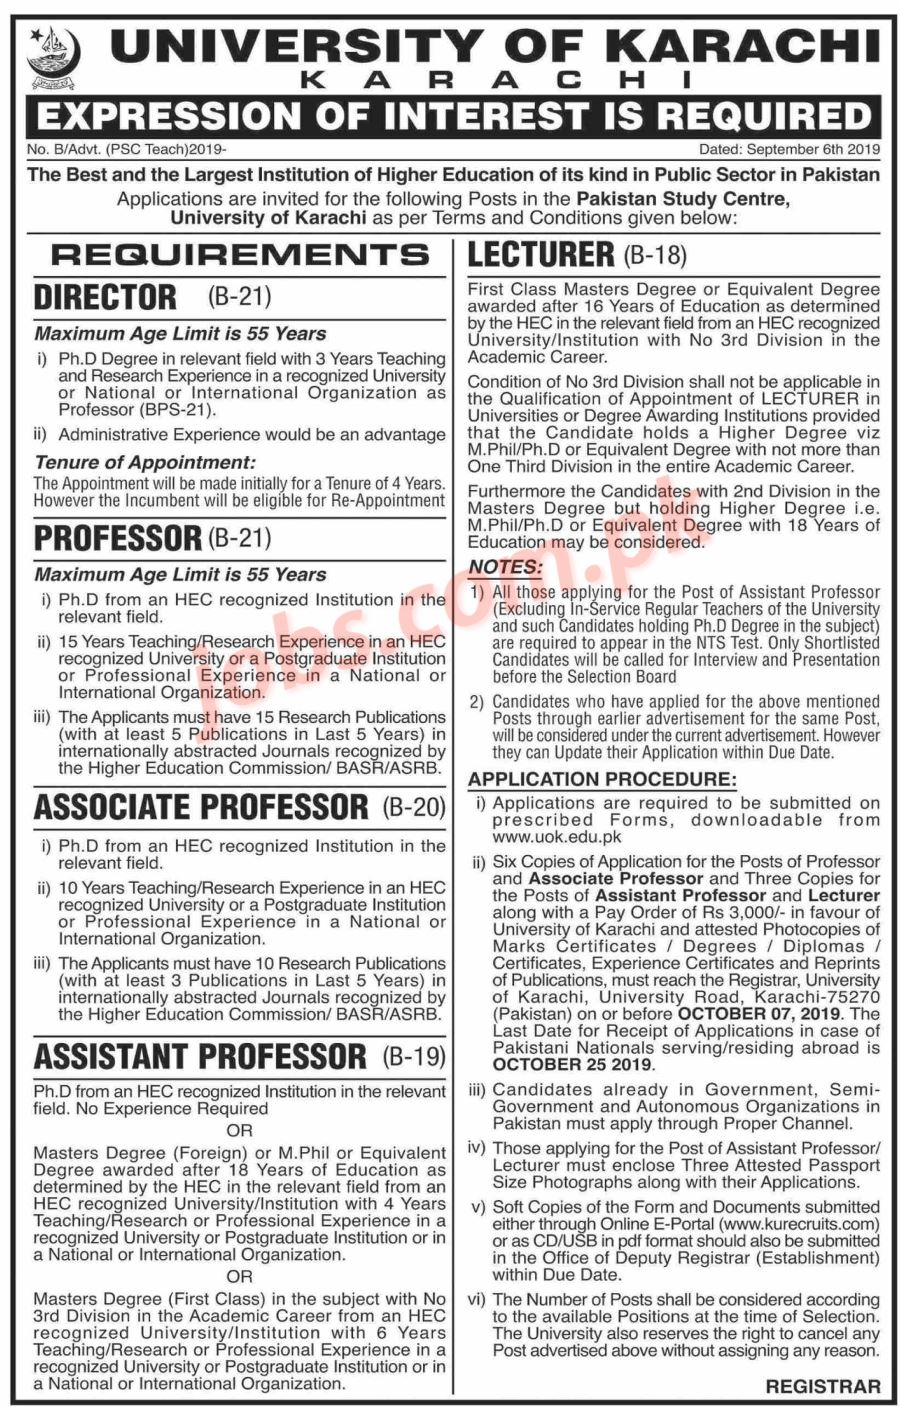 University of Karachi Jobs 2019 for Teaching & Non-Teaching